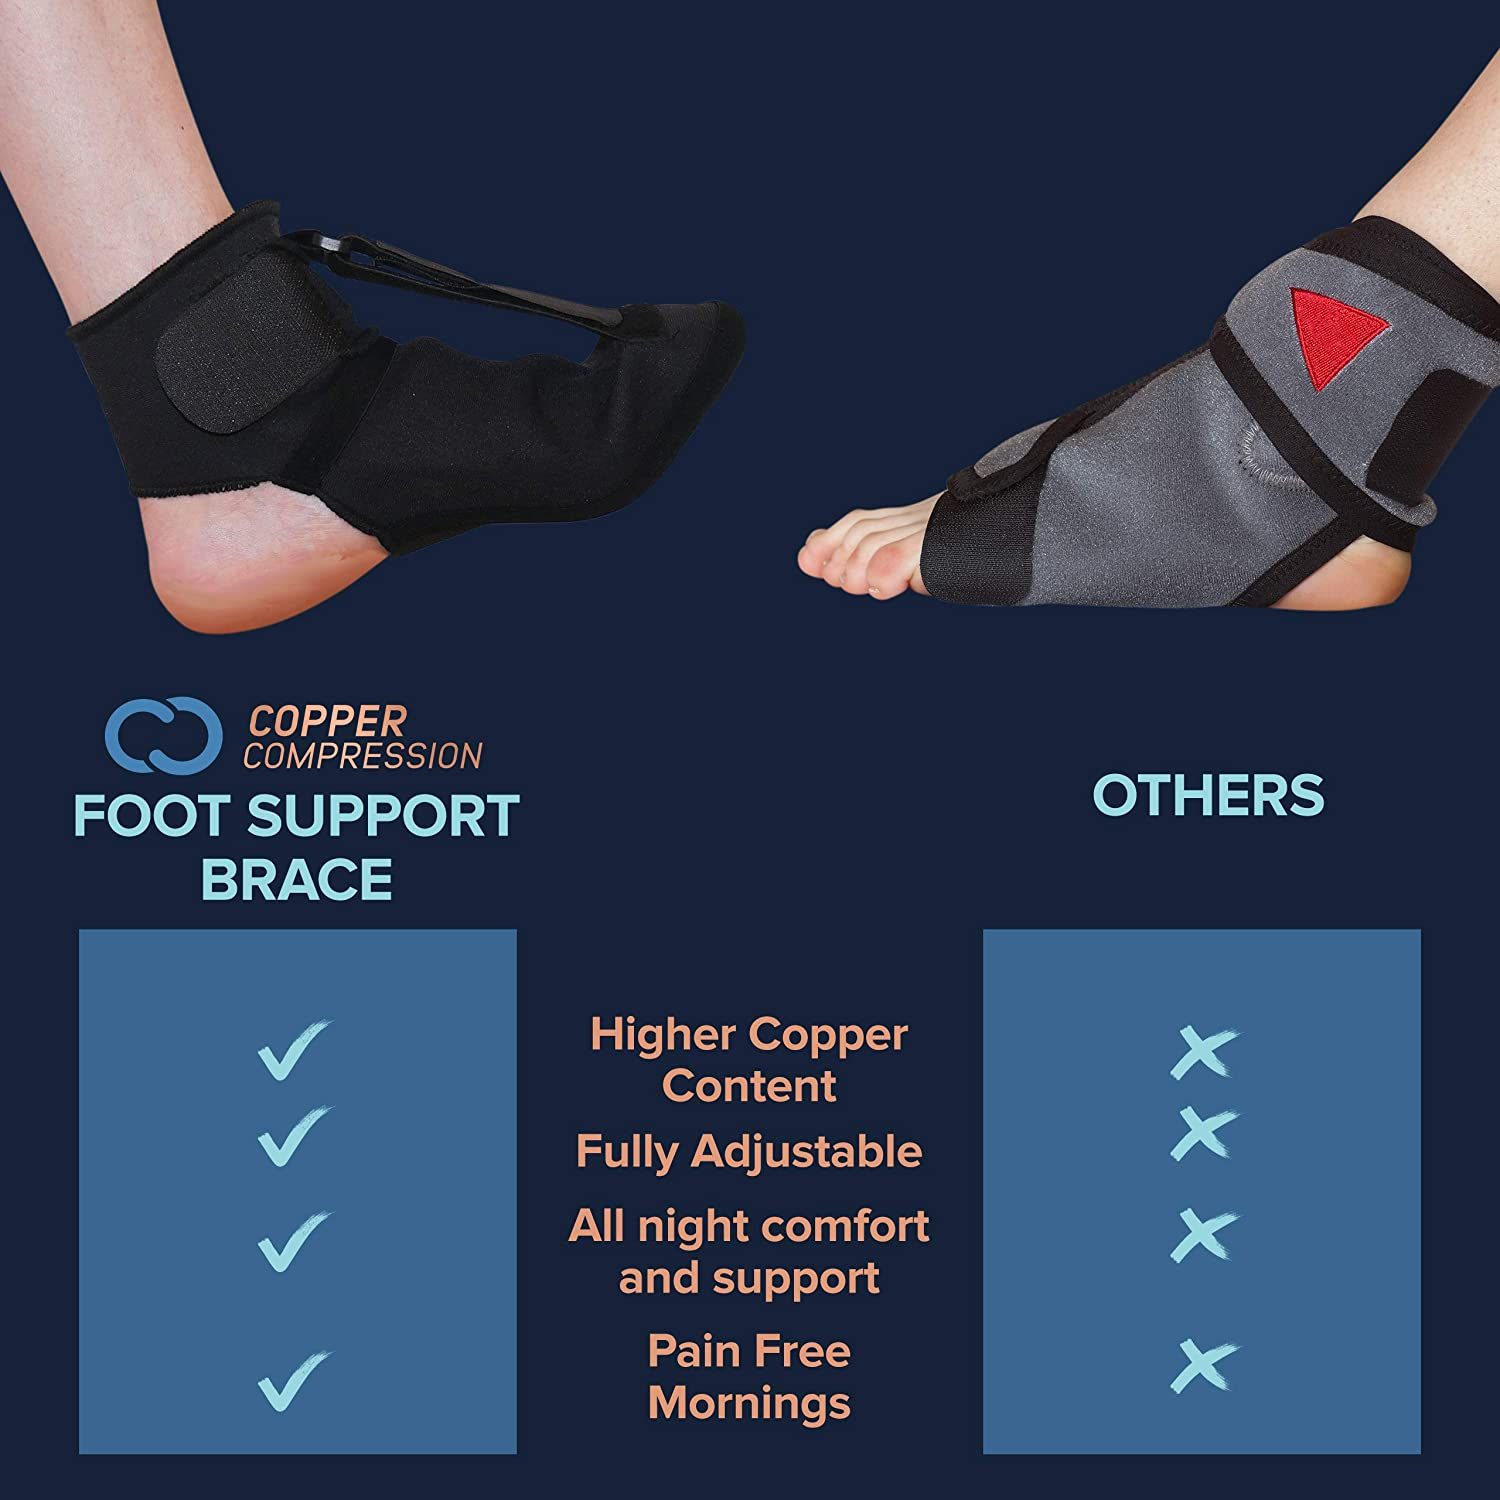 Copper Compression Plantar Fasciitis Night Splint Sock. Planter Fasciitis Support Dorsal Drop Foot Brace for Right or Left Foot. Soft Stretching Boot Splints for Feet, Sleep, Recovery Socks, Braces: Health & Personal Care